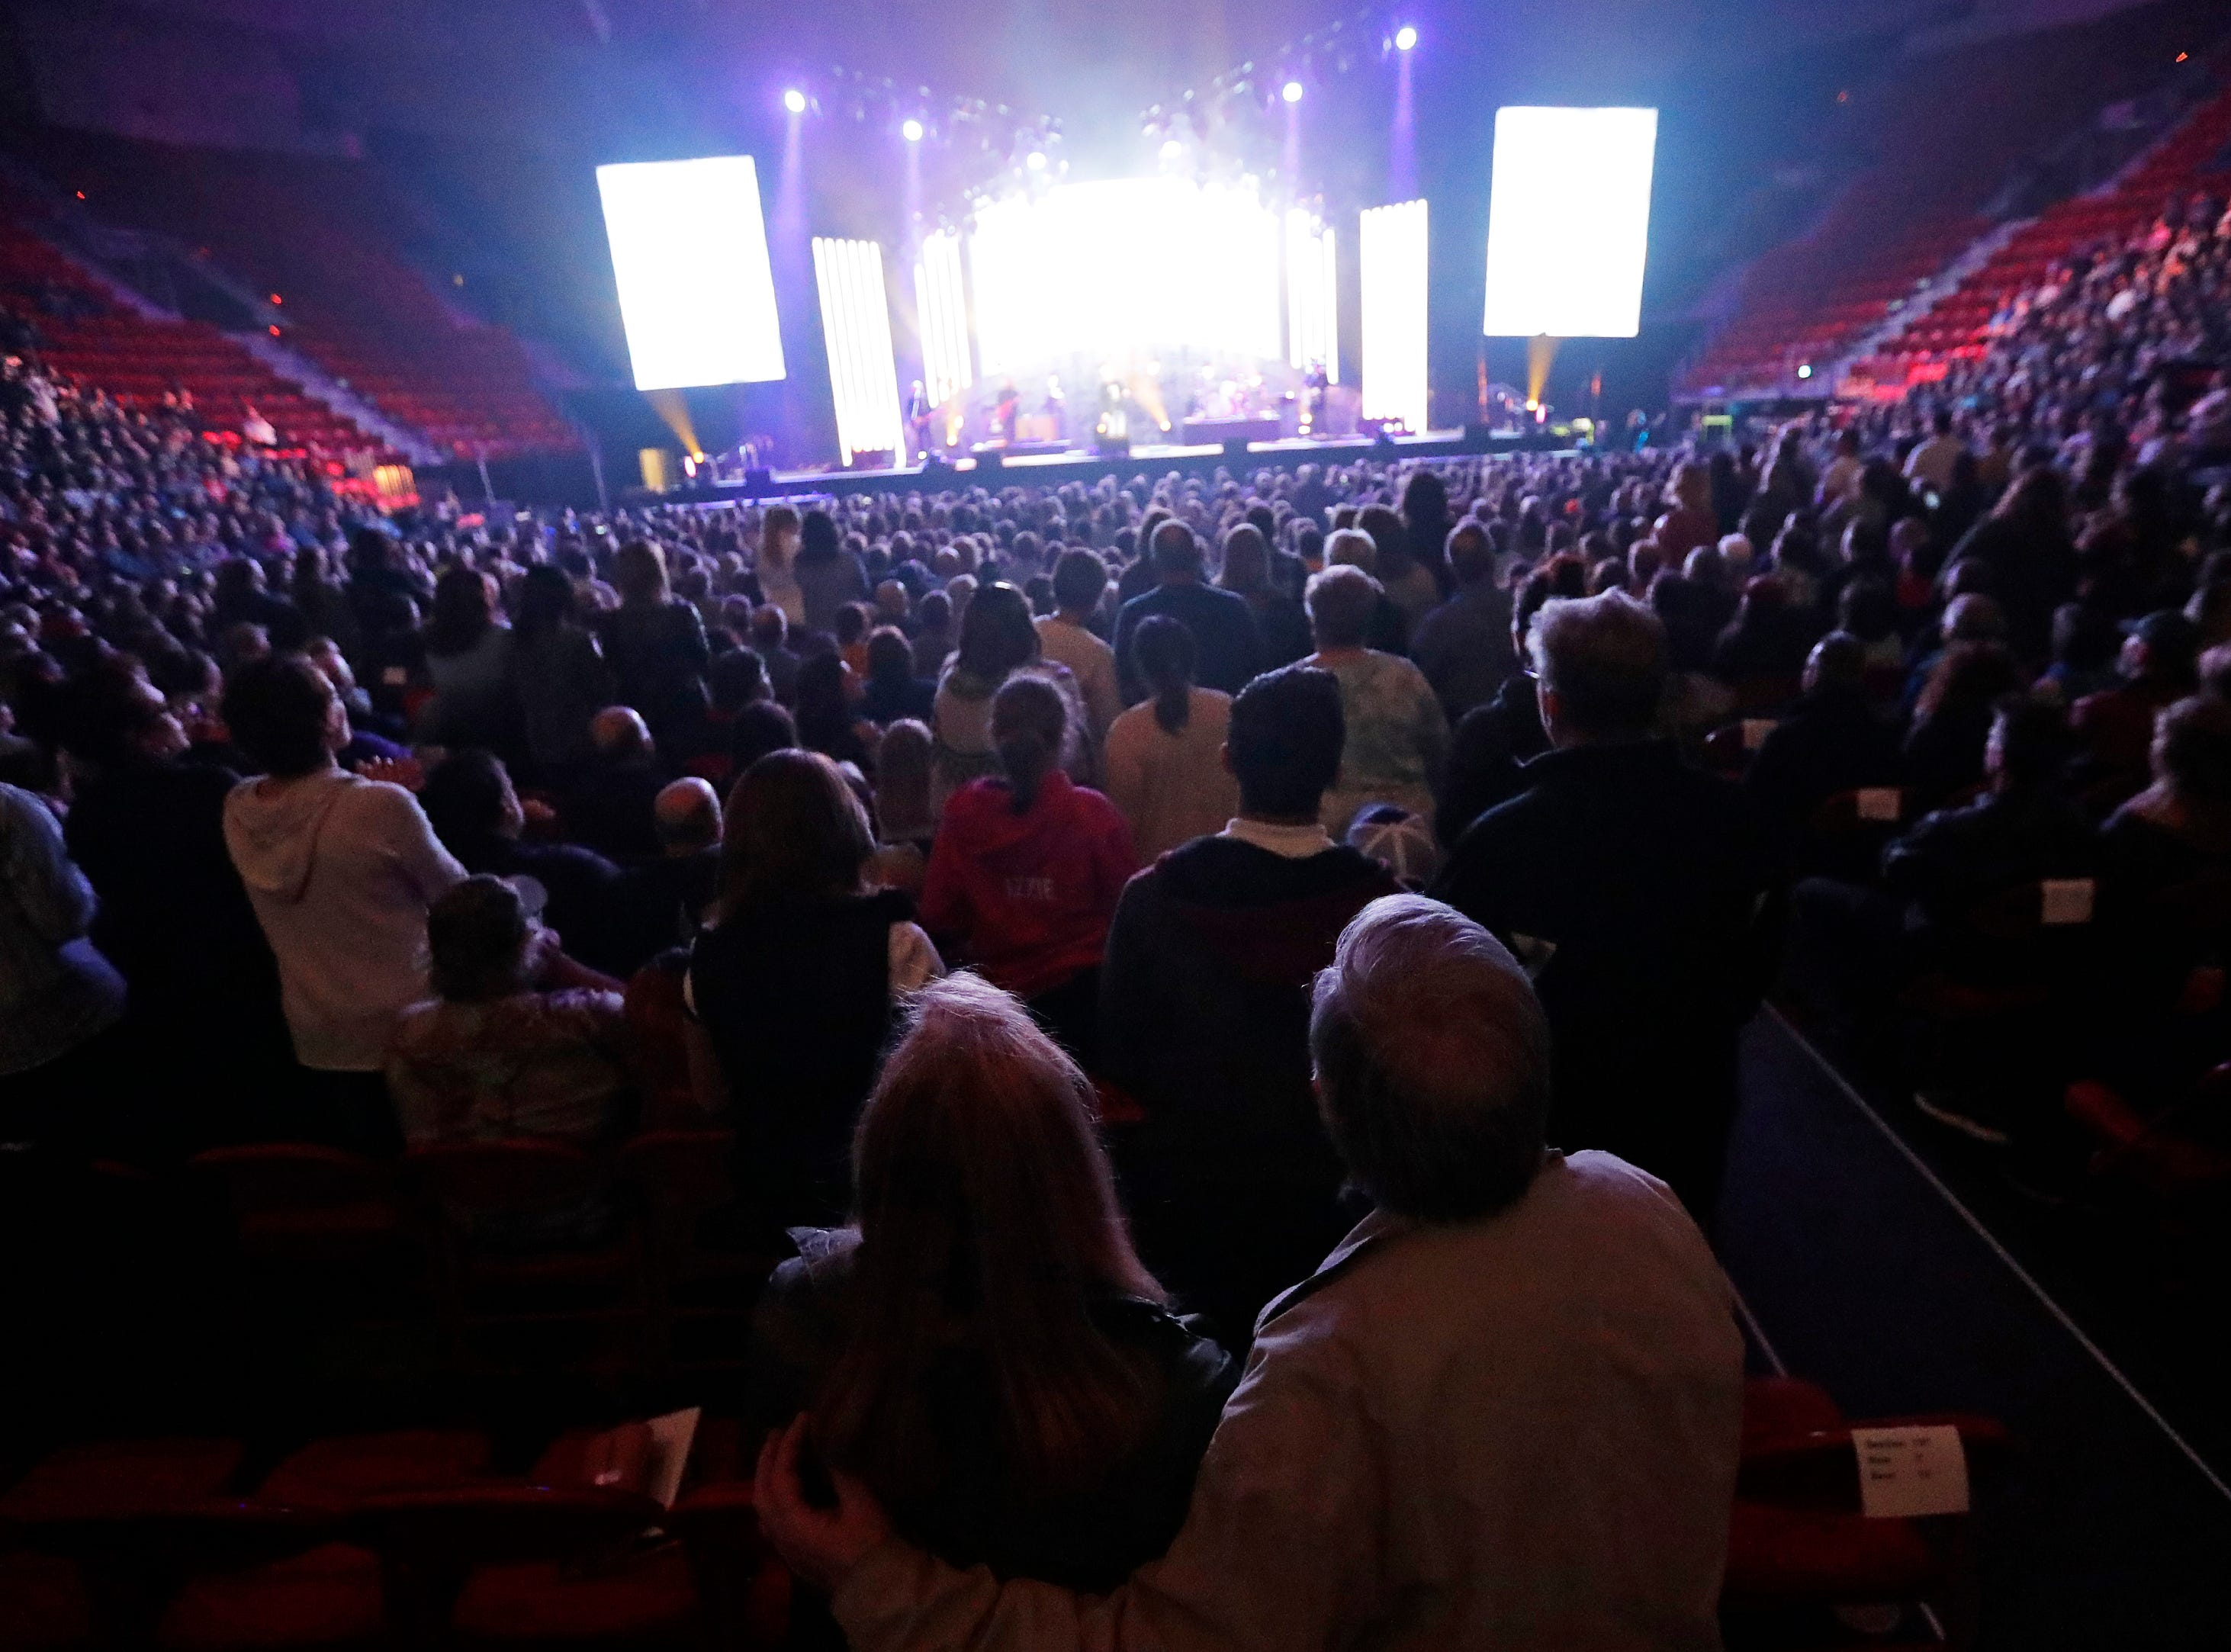 MercyMe performs at the Resch Center on Thursday, March 21, 2019 in Ashwaubenon, Wis.